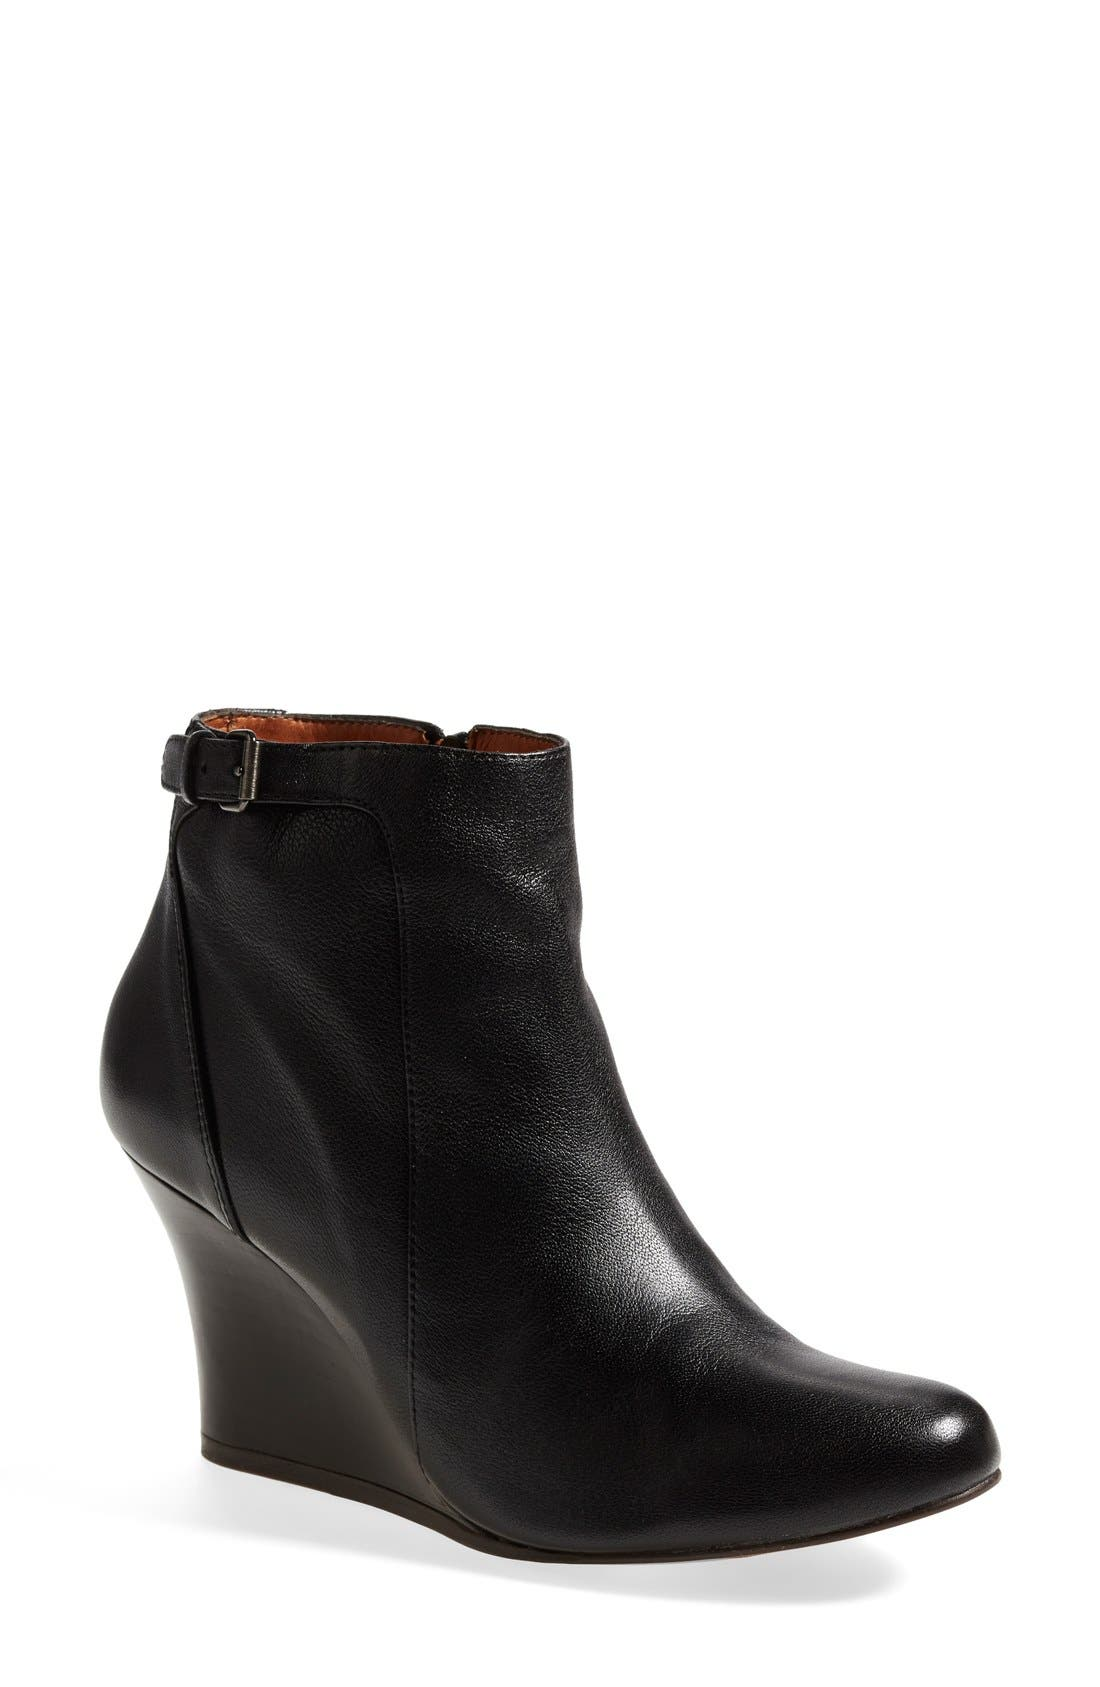 Main Image - Lanvin Wedge Ankle Bootie (Women)